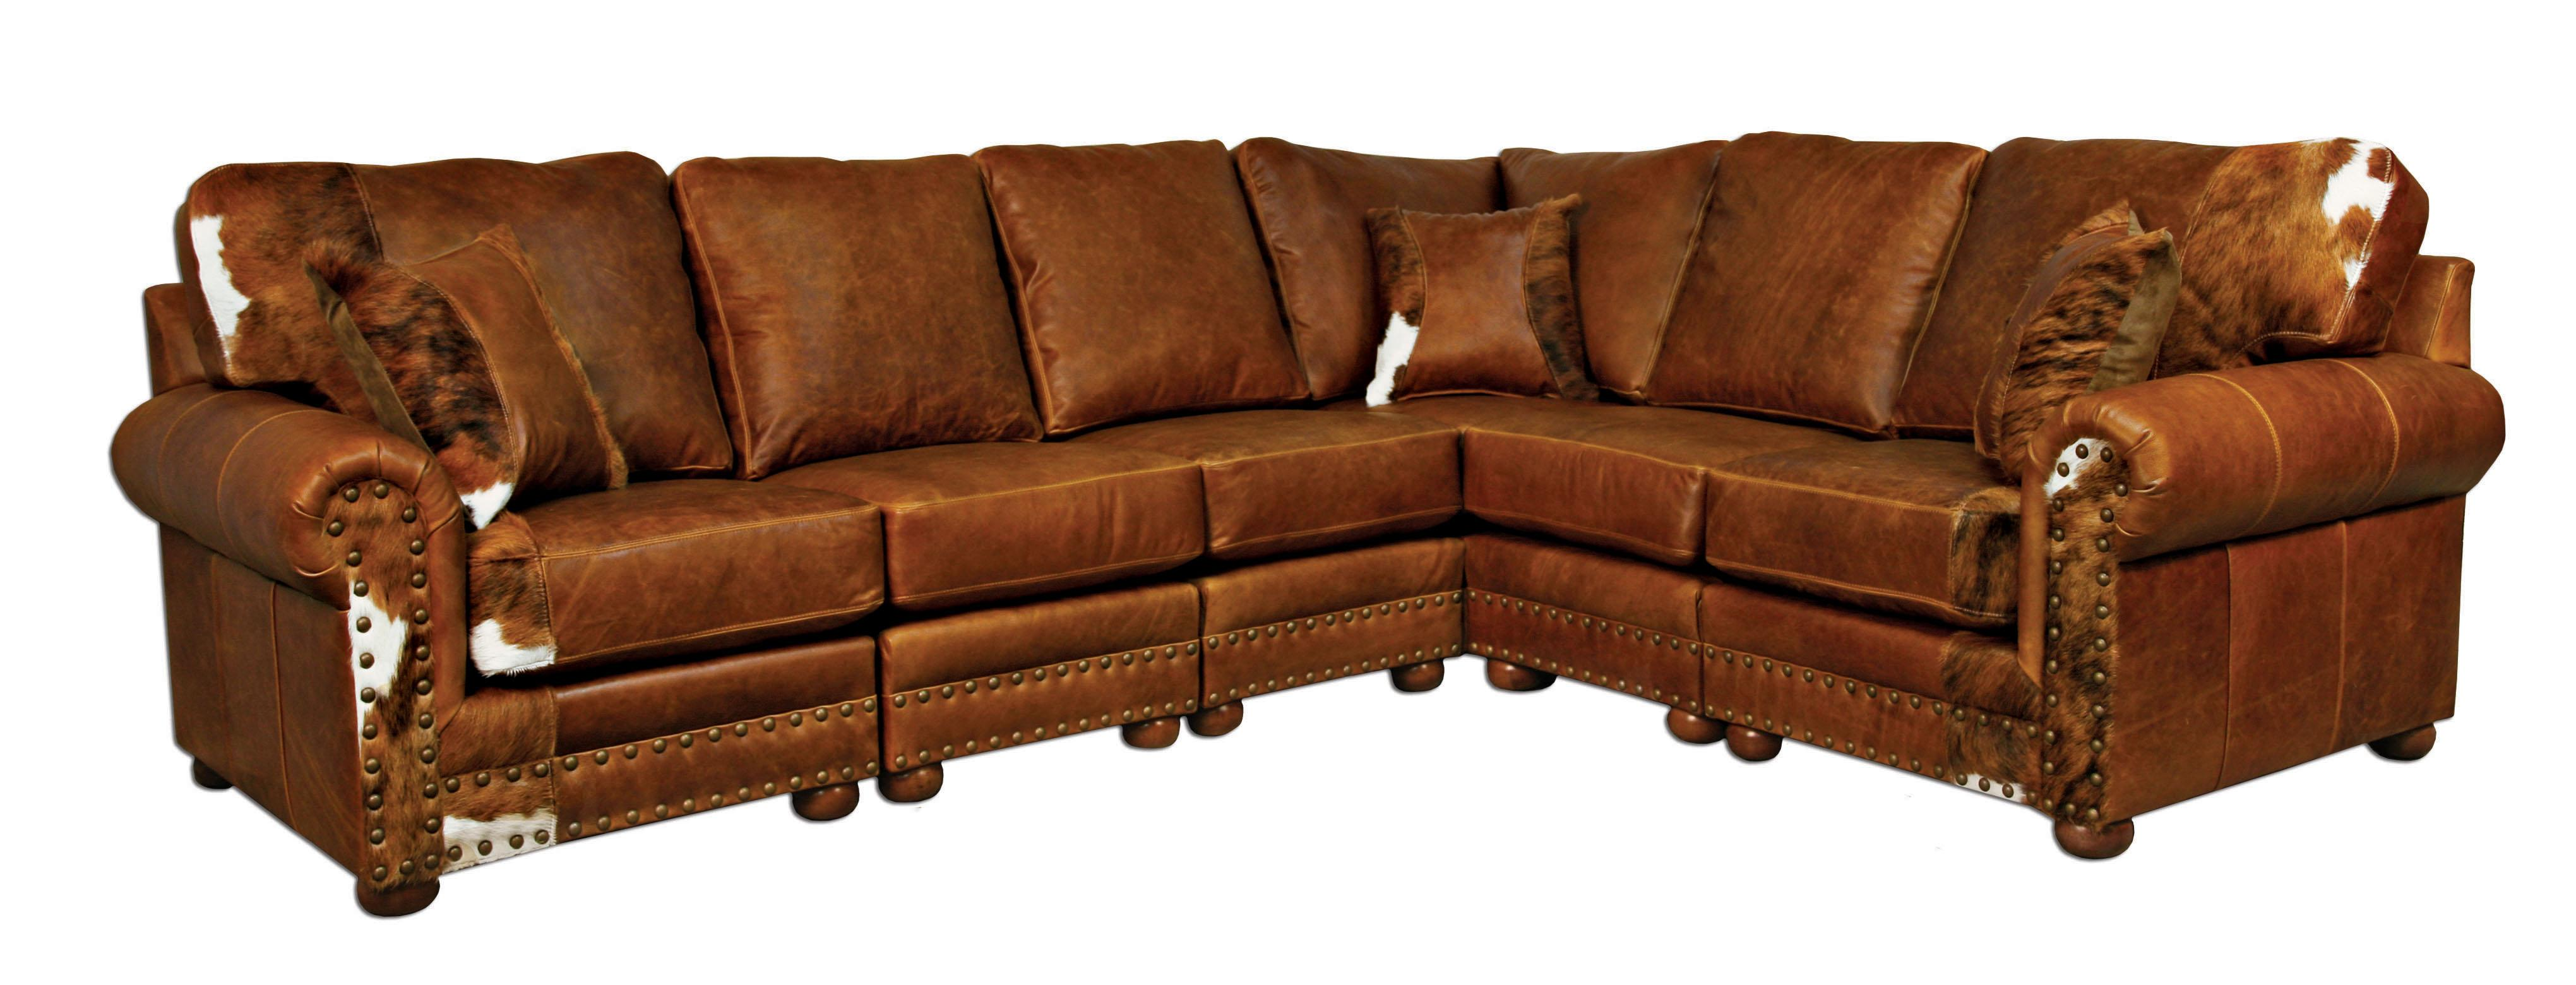 rustic western sectional sofas